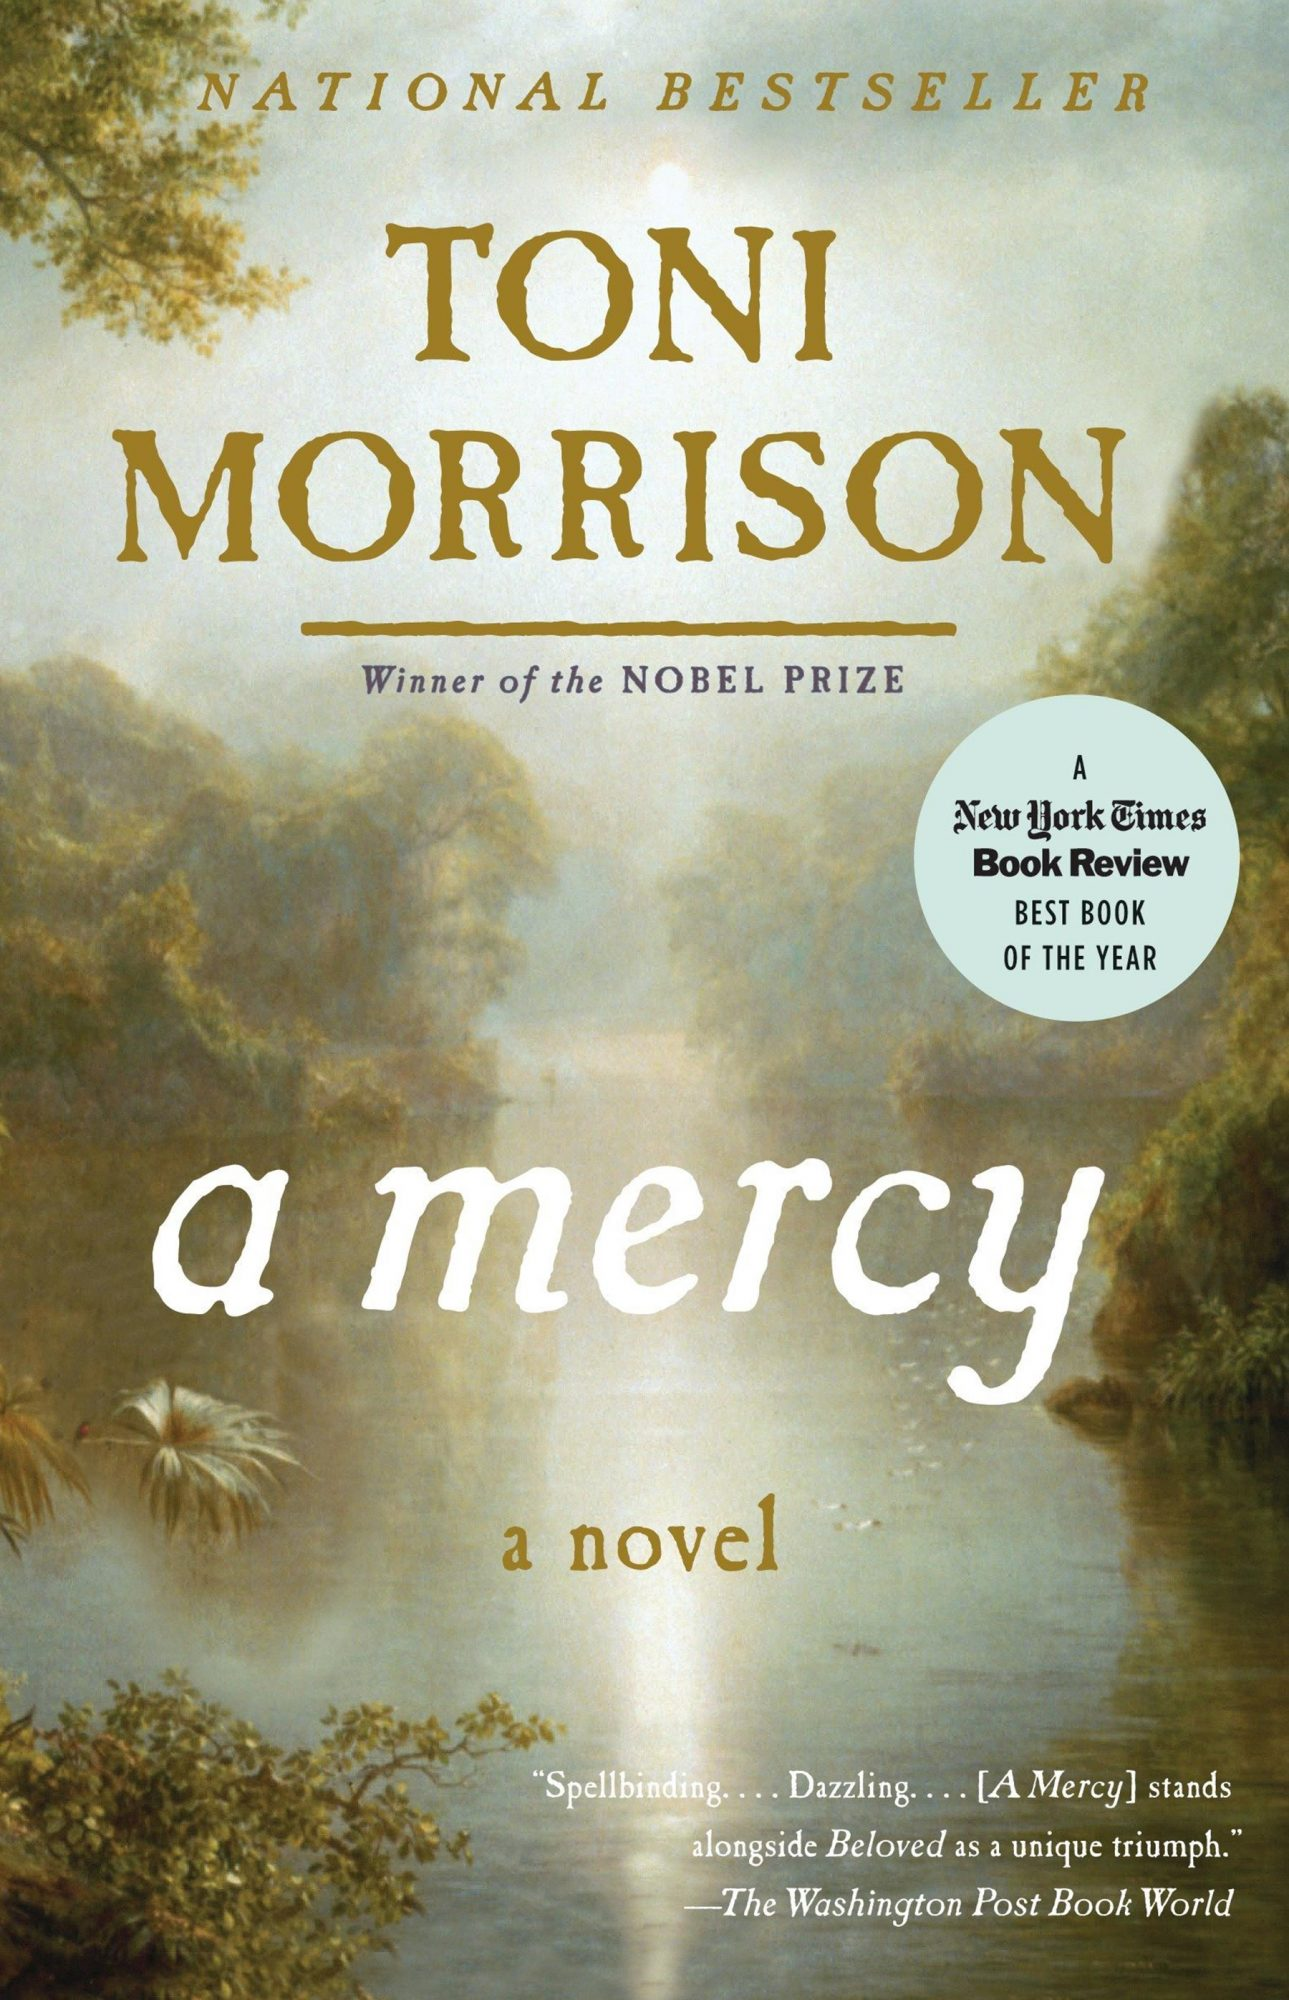 A Mercy by Toni MorrisonPublisher: Vintage